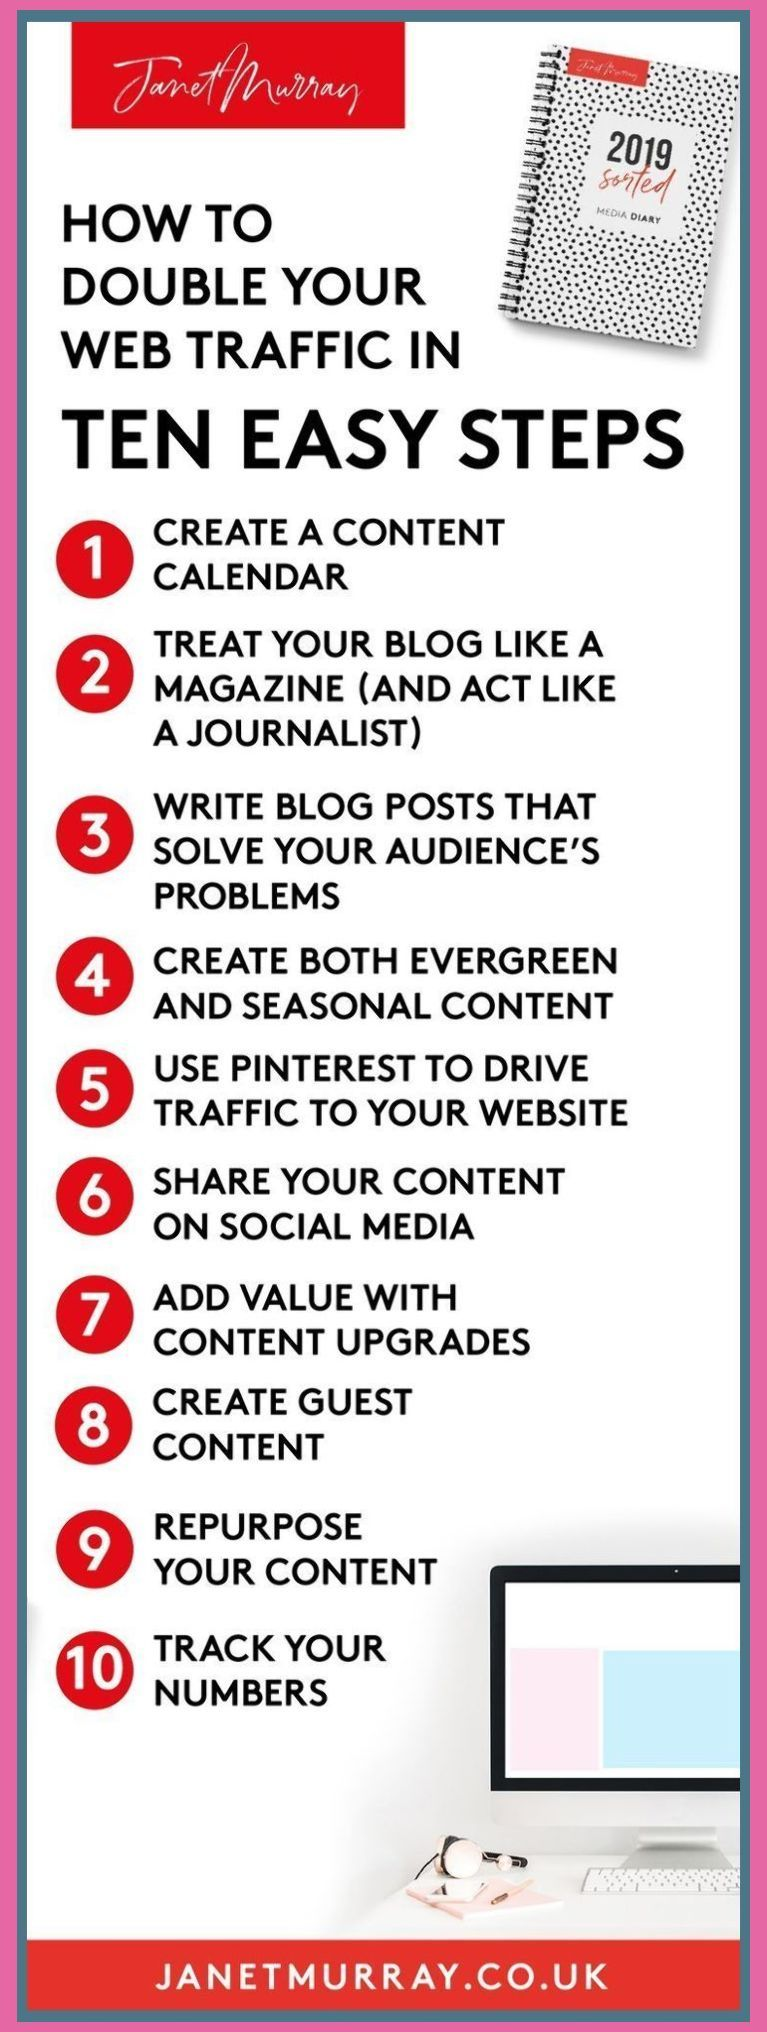 How to double your web traffic in 10 easy steps Content